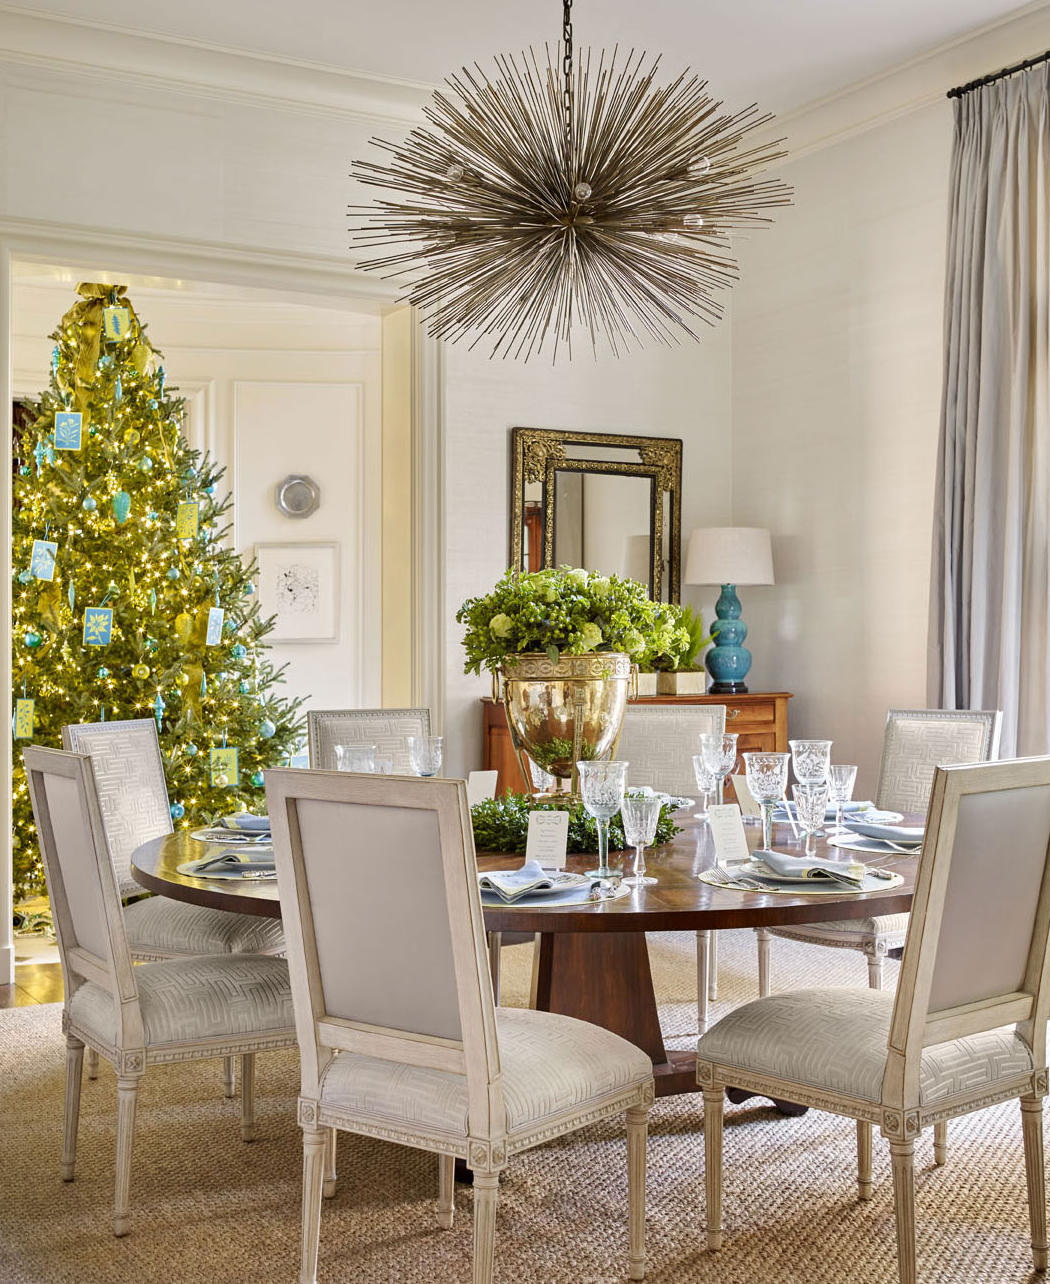 "<a href=""http://huffdewberry.com"" target=""_blank"">Will Huff and Heather Dewberry </a>added shots of turquoise and chartreuse to their holiday palette for a Buckhead client. From <a href=""http://www.traditionalhome.com/category/beautiful-homes/holiday-home-dressed-shades-blue"" target=""_blank"">Traditional Home</a> (photo by Emily Followill.)"